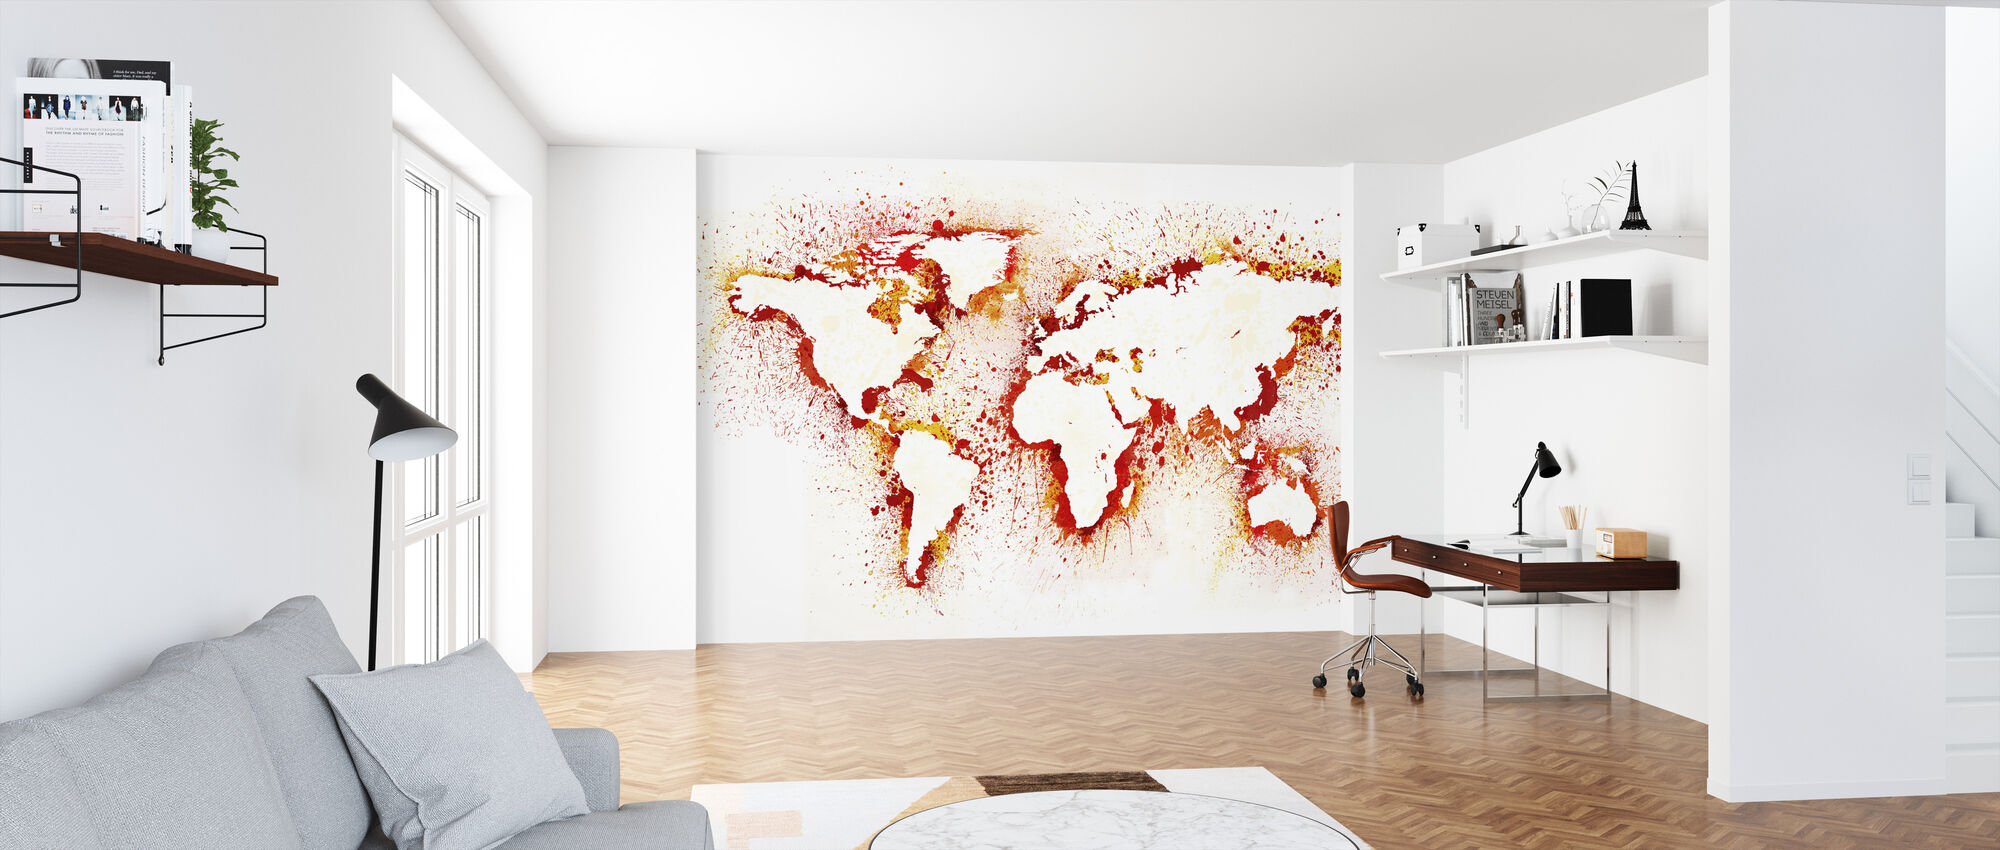 Abstract World Map - Wallpaper - Office